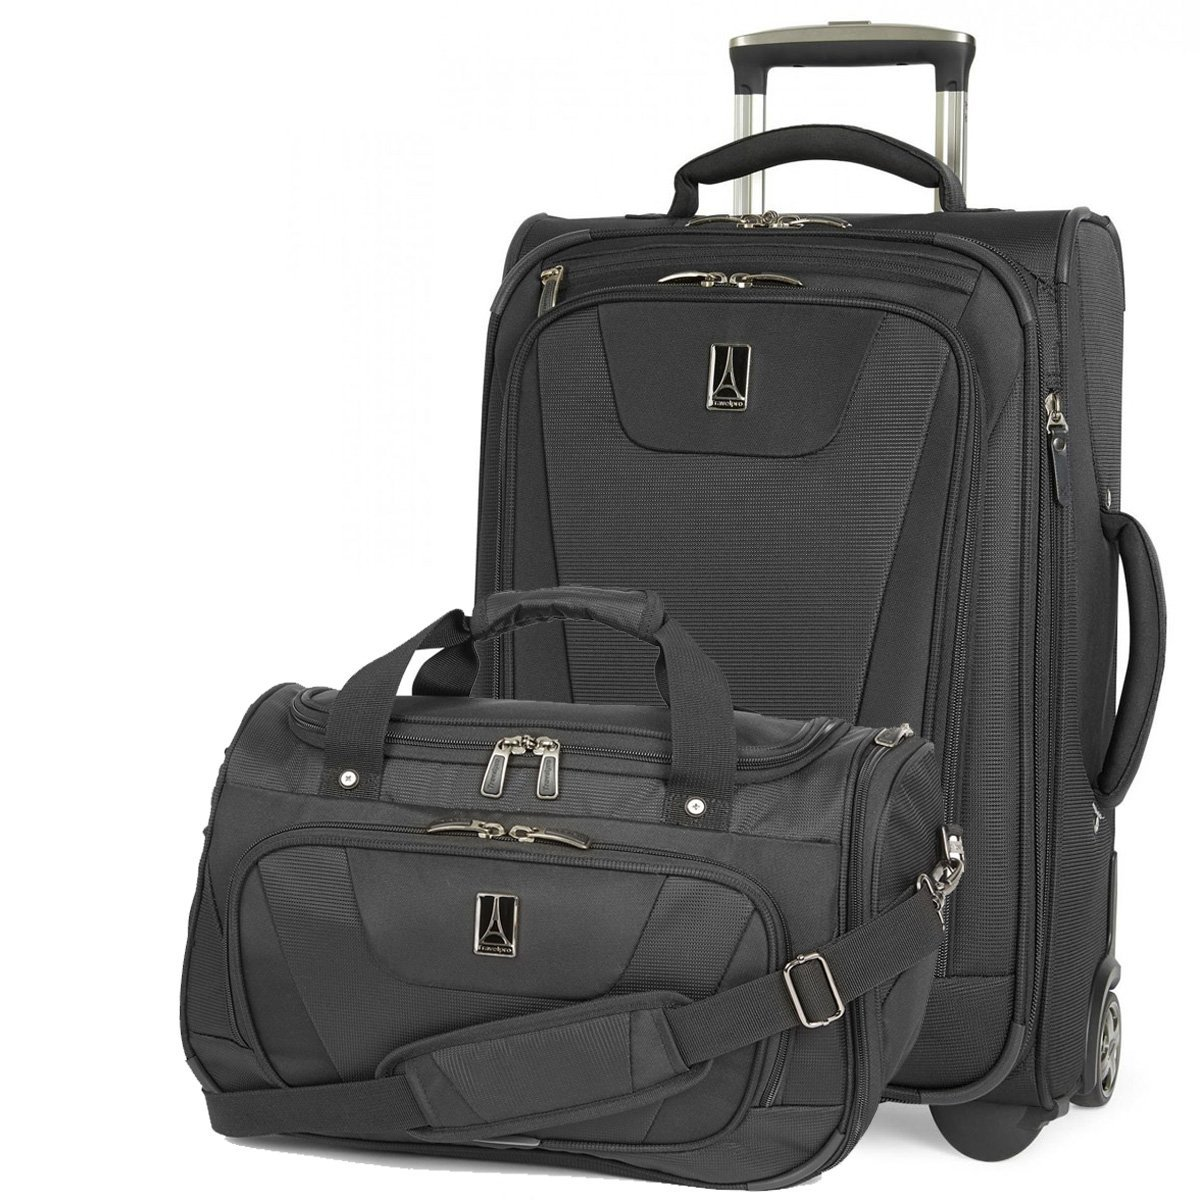 Travelpro Maxlite 4 Expandable Rollaboard 22 Inch Suitcase by